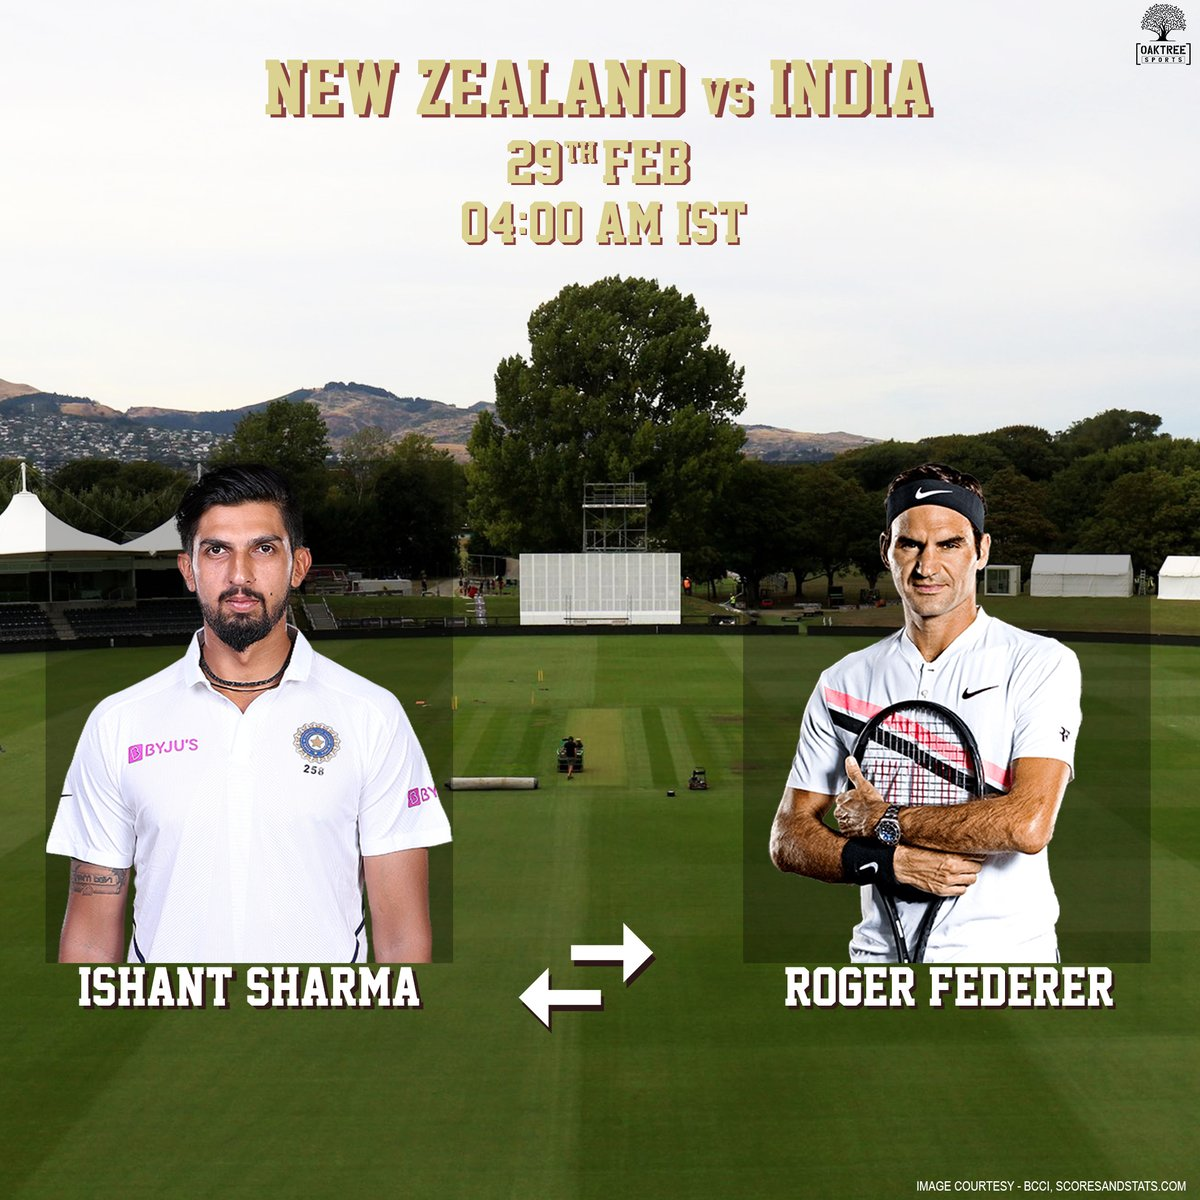 With the pitch covered in grass, we think we've found the right candidate to replace Ishant Sharma in tomorrow's Test! 🏏We've heard he's got good swing too! 😉#OaktreeSports #IshantSharma #RogerFederer #NZvIND @rogerfederer